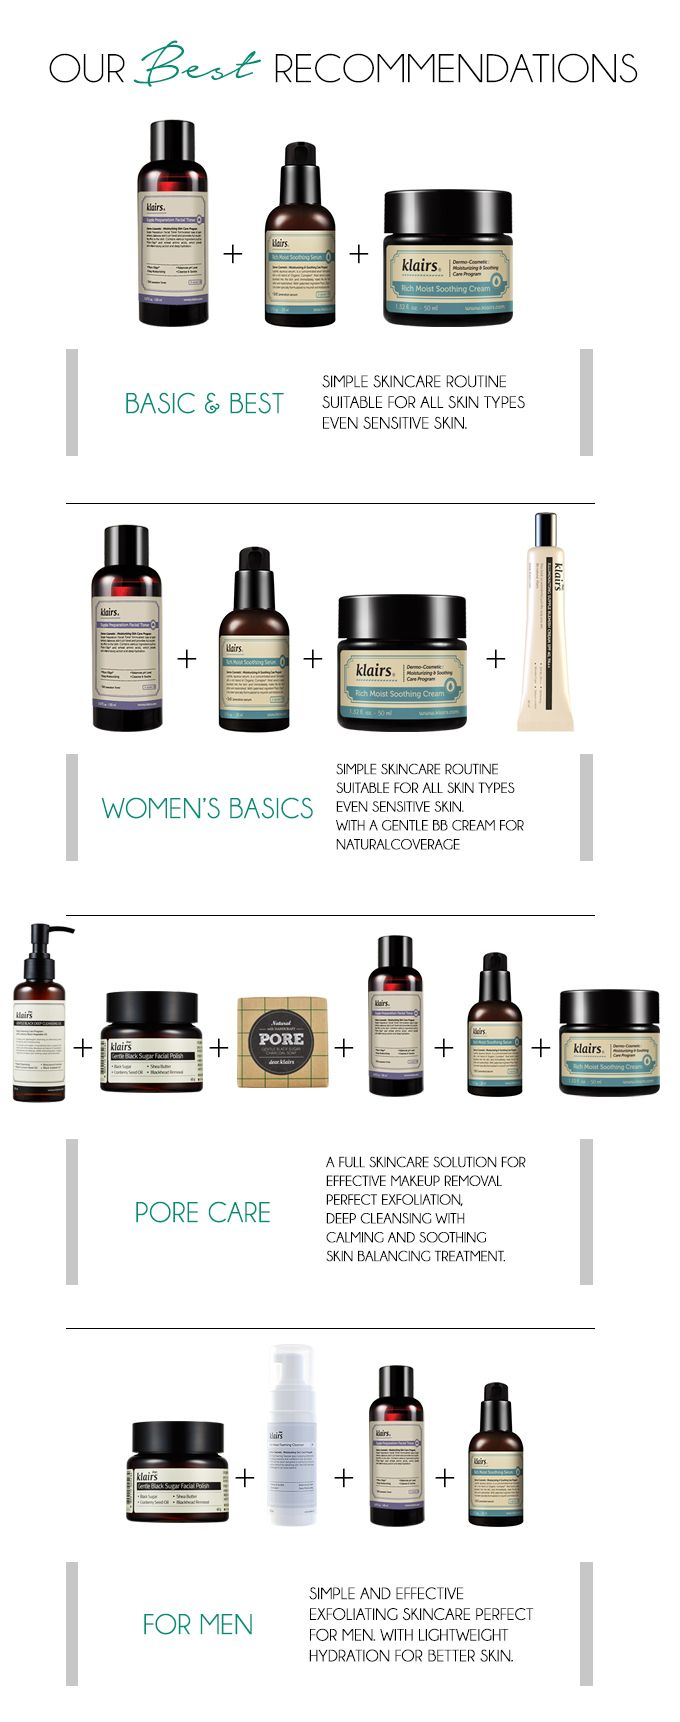 WISHTREND GLAM - http://www.wishtrend.com/glam/simple-but-enough-the-best-korean-cosmetics-brand-klairs/